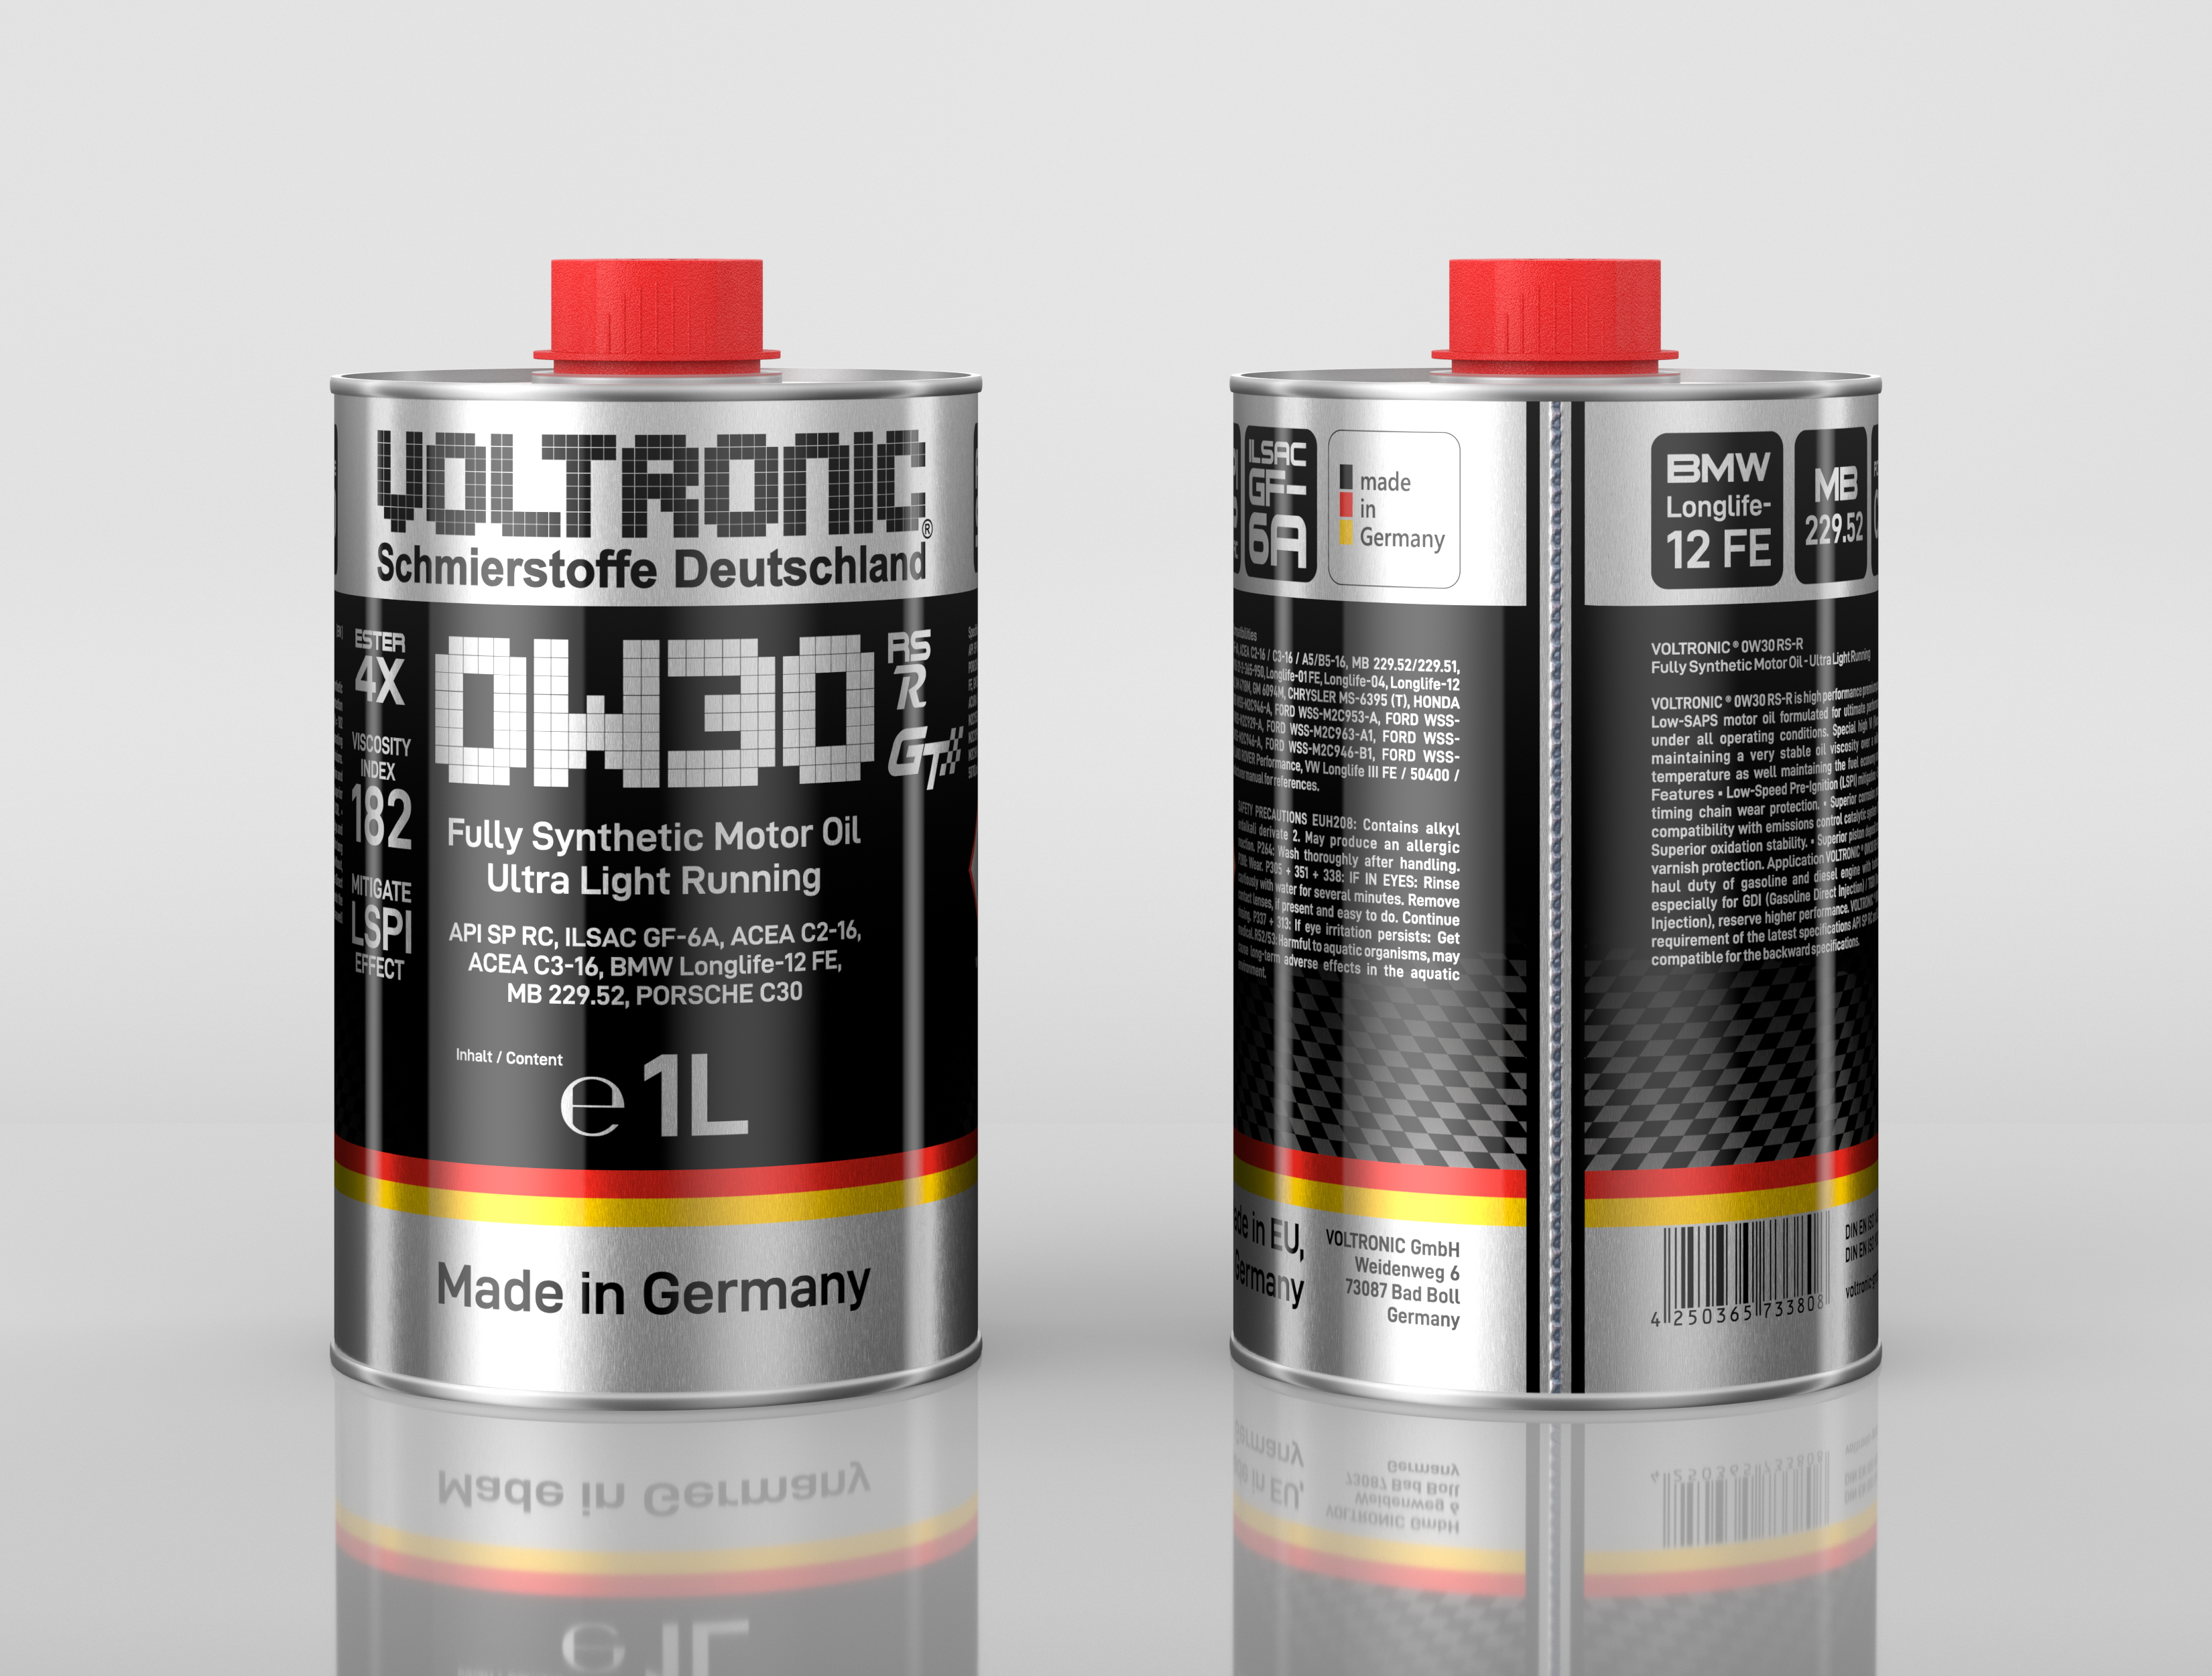 voltronic 0W30 RS-R motor oil